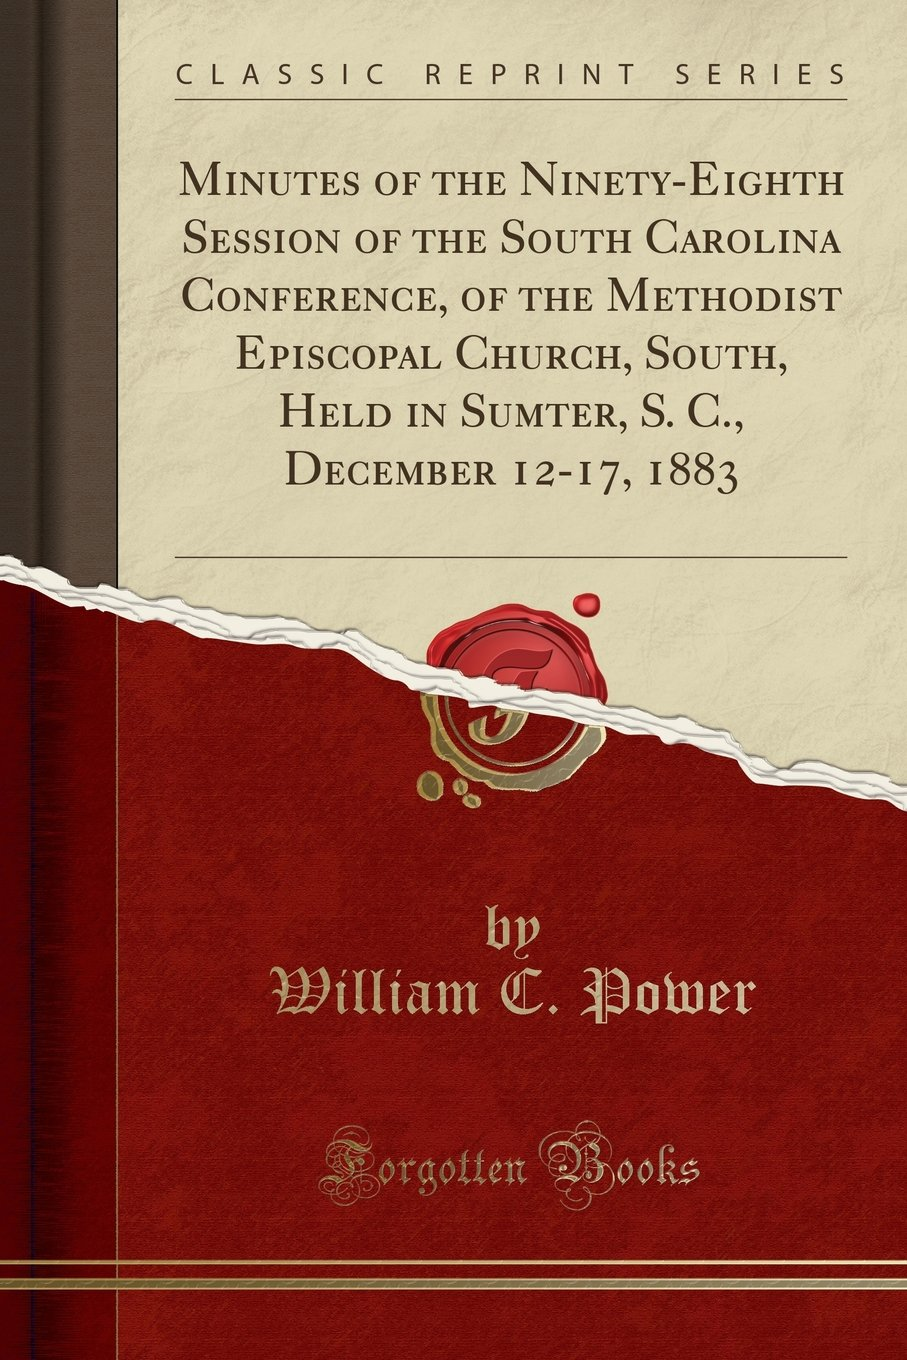 Minutes of the Ninety-Eighth Session of the South Carolina Conference, of the Methodist Episcopal Church, South, Held in Sumter, S. C., December 12-17, 1883 (Classic Reprint) pdf epub